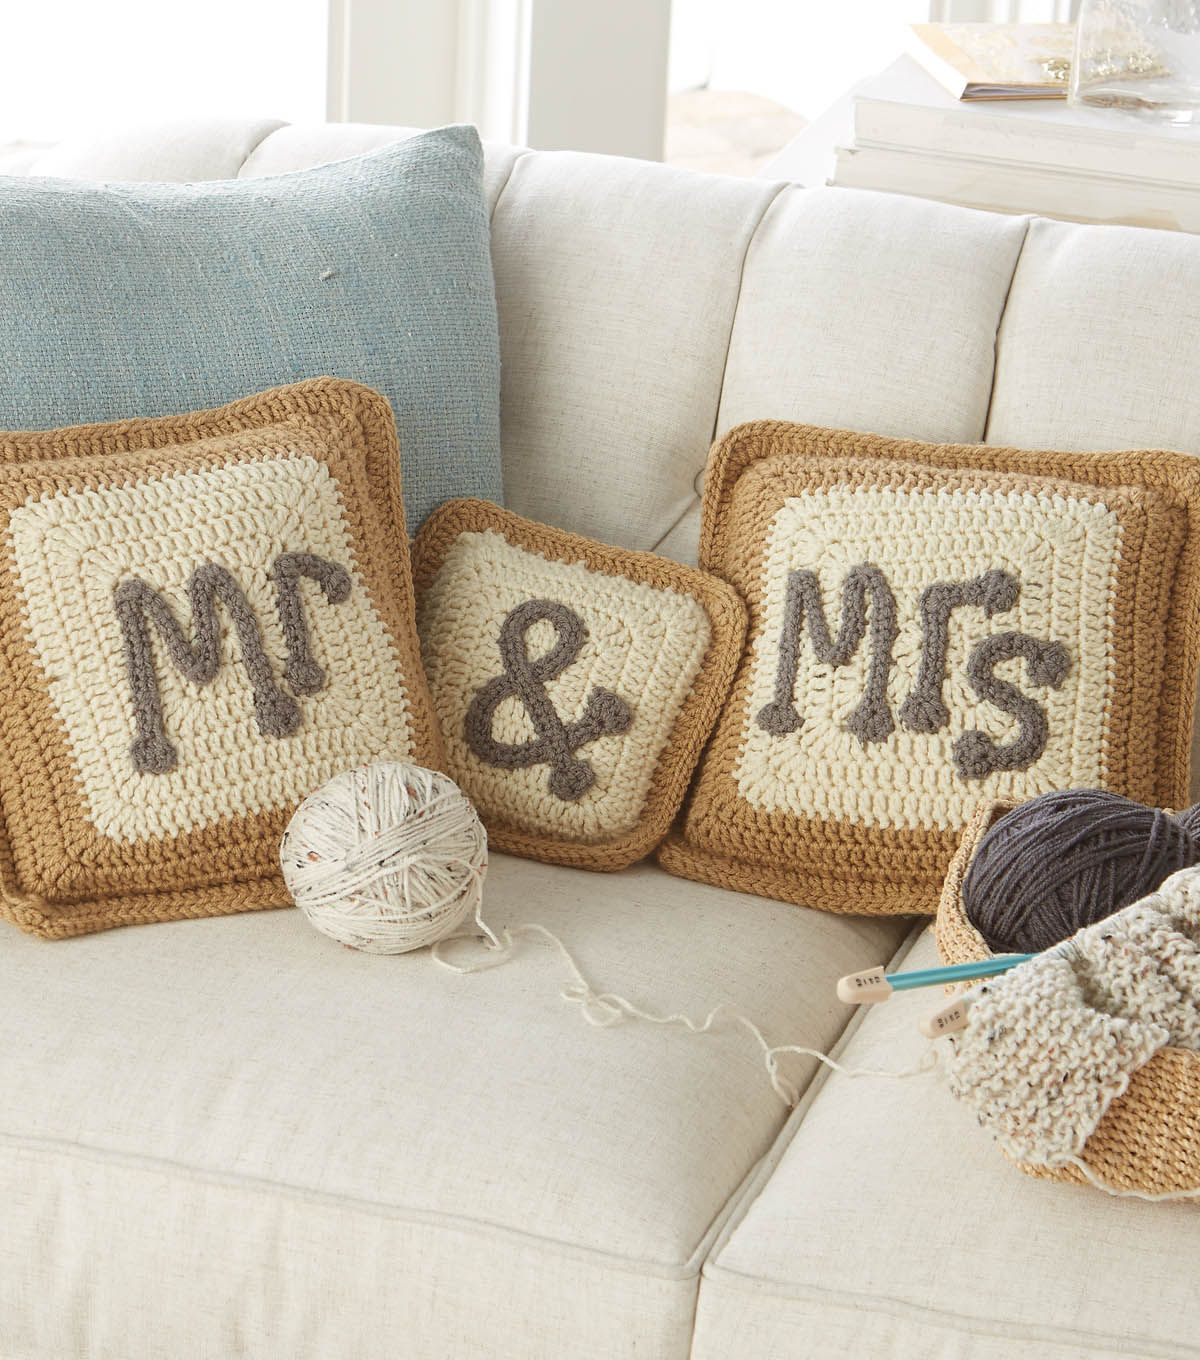 Wedding Gift Knitting Patterns : Ideas Knitted Wedding Gifts 1000 images about wedding knits on ...